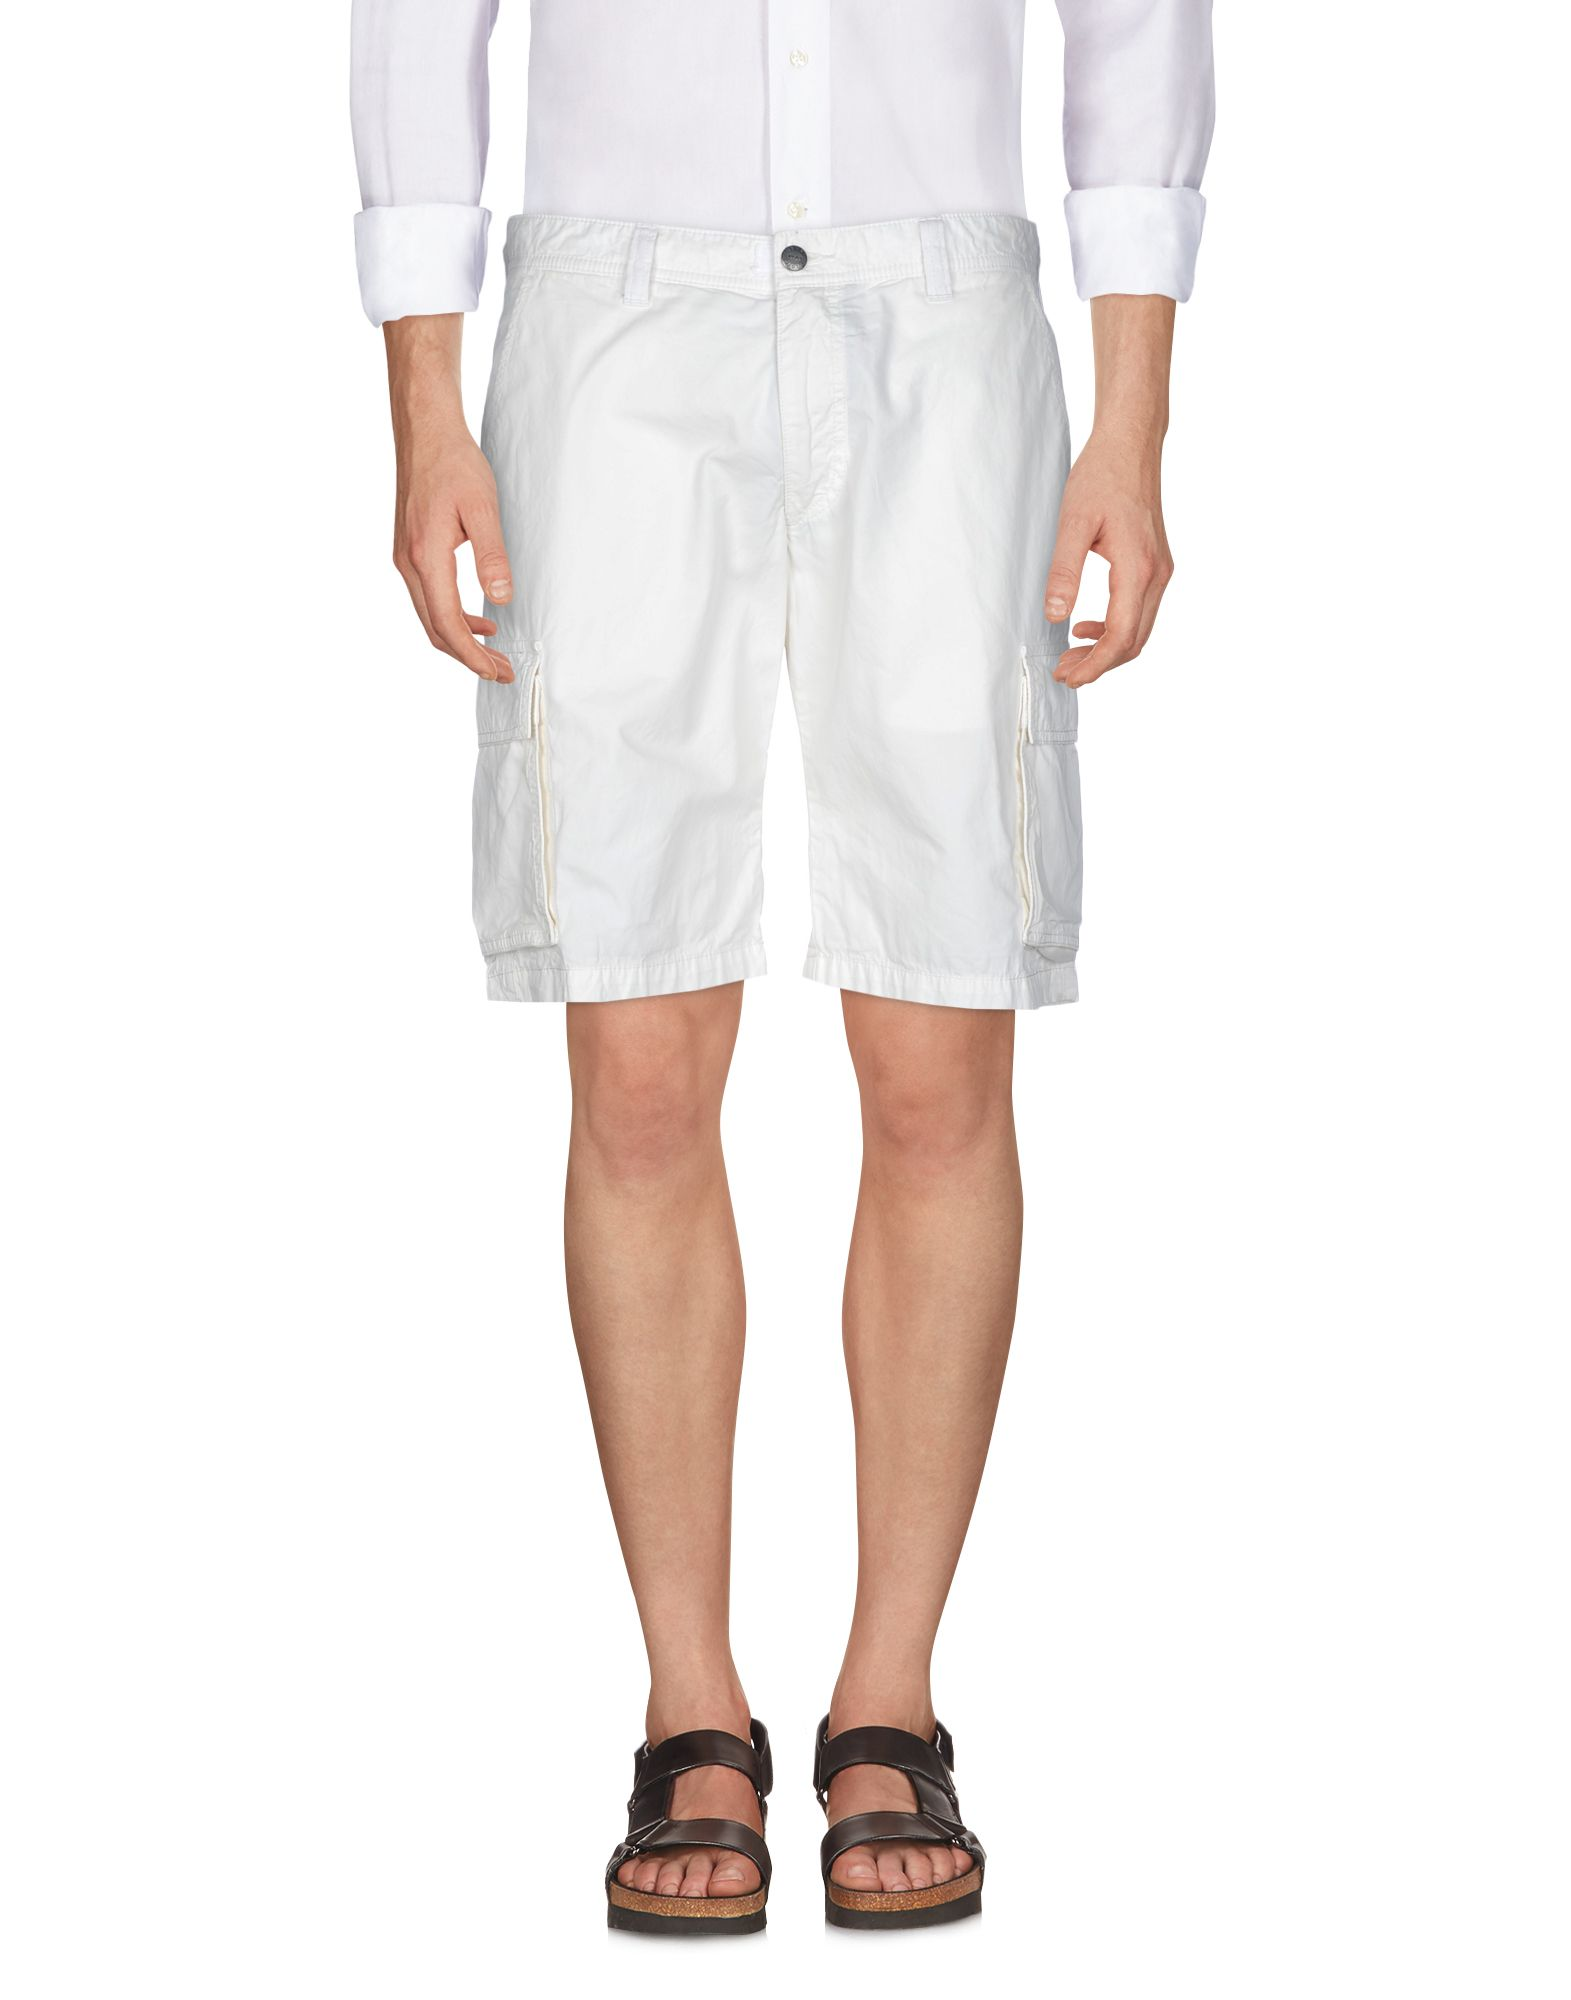 HENRI LLOYD Shorts & Bermuda in White